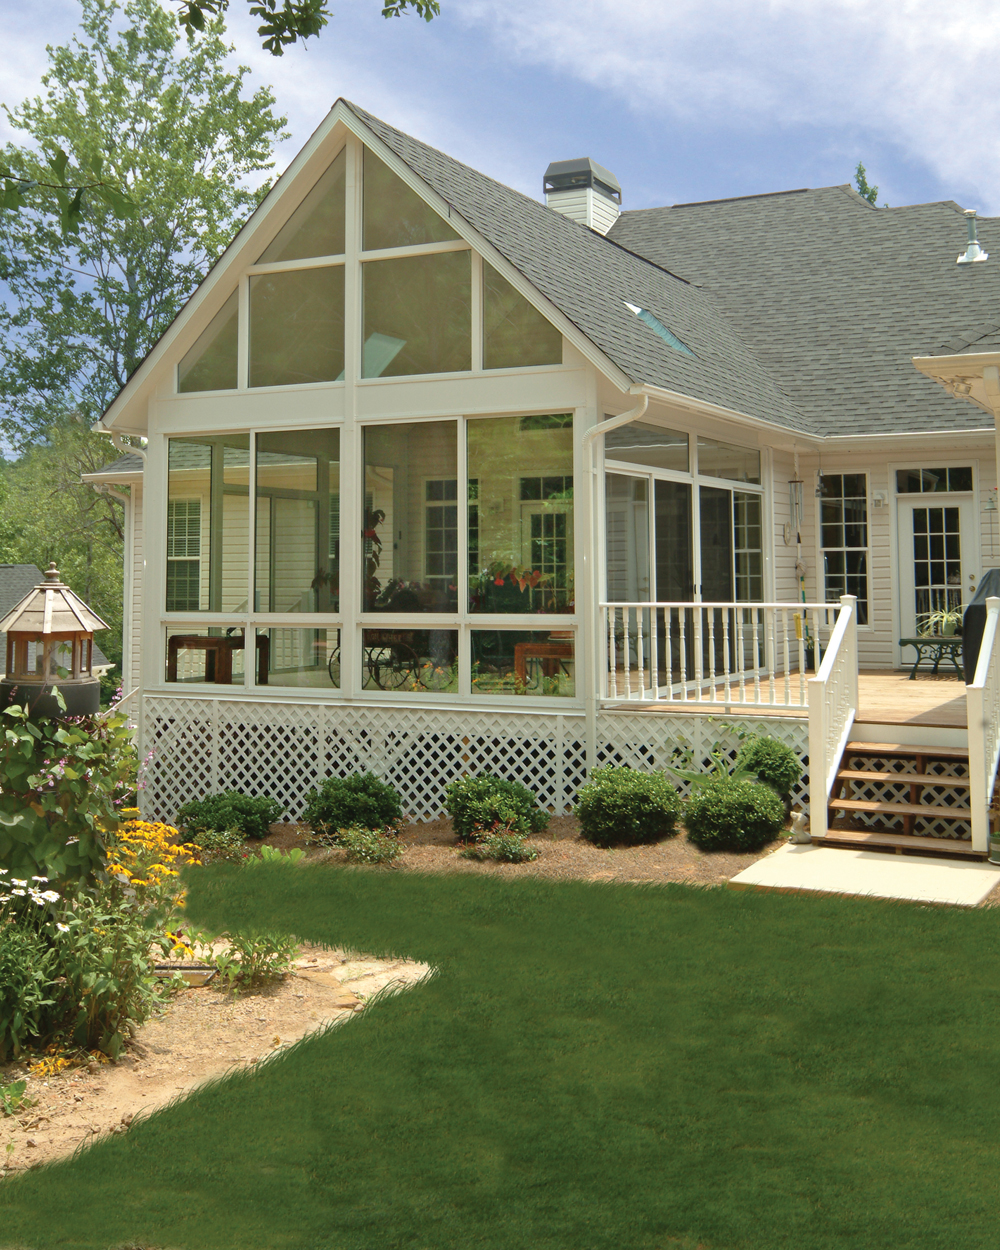 Patio enclosures inc provides five lessons for building for Sunroom and patio designs